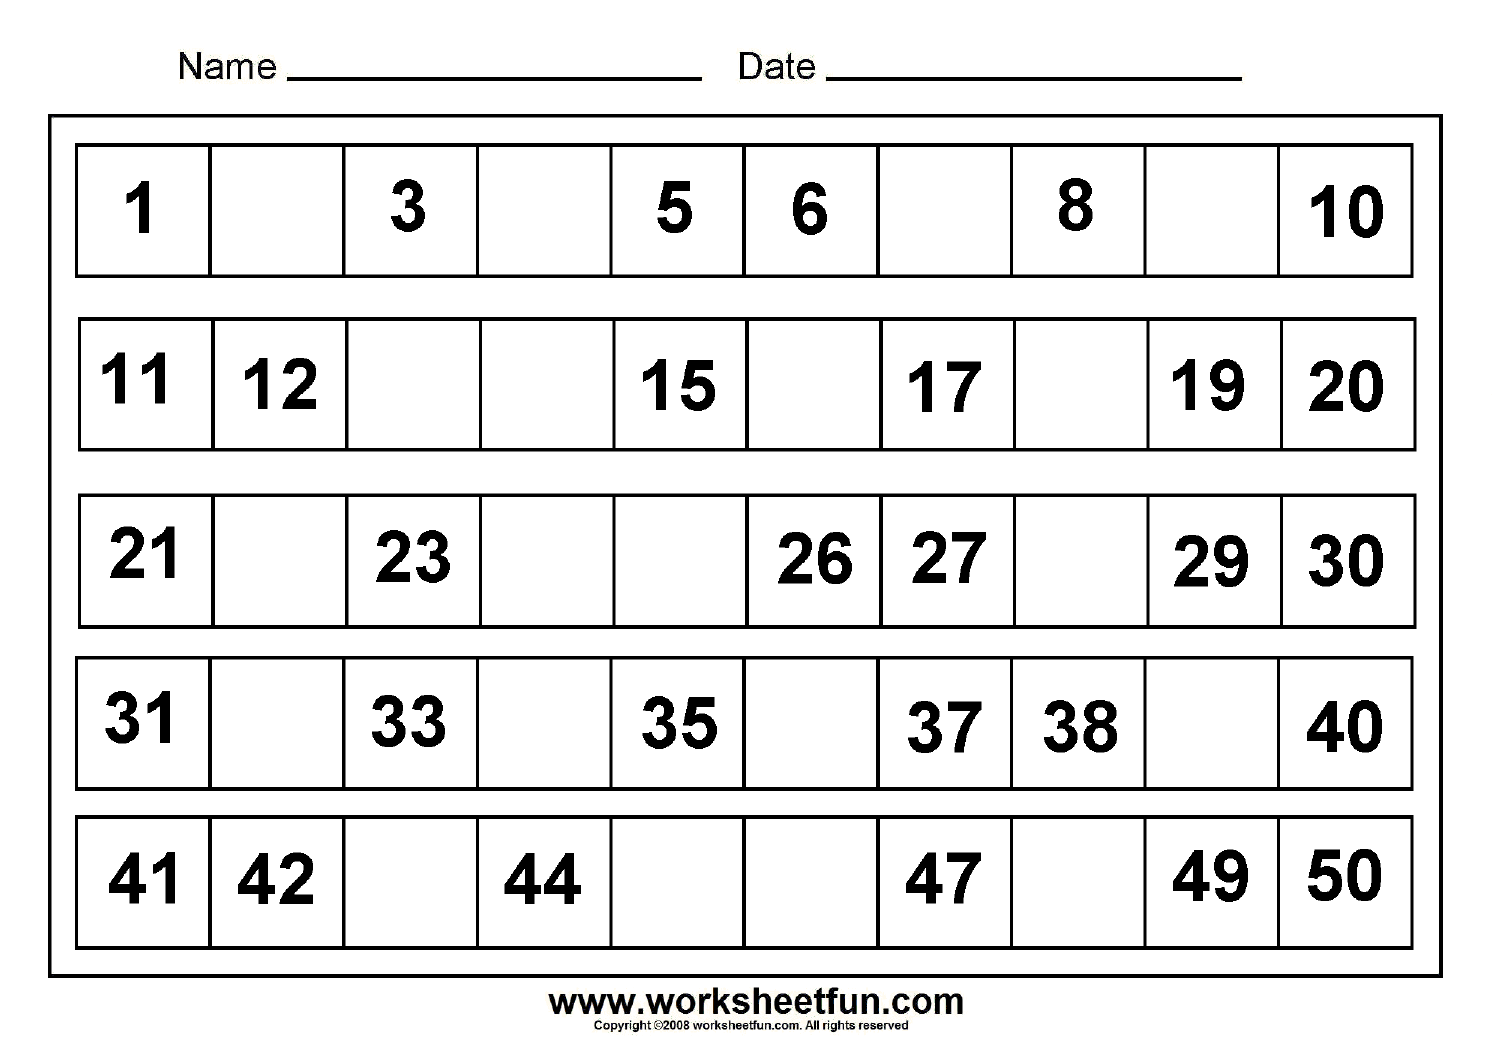 Worksheet On Missing Numbers 1 20